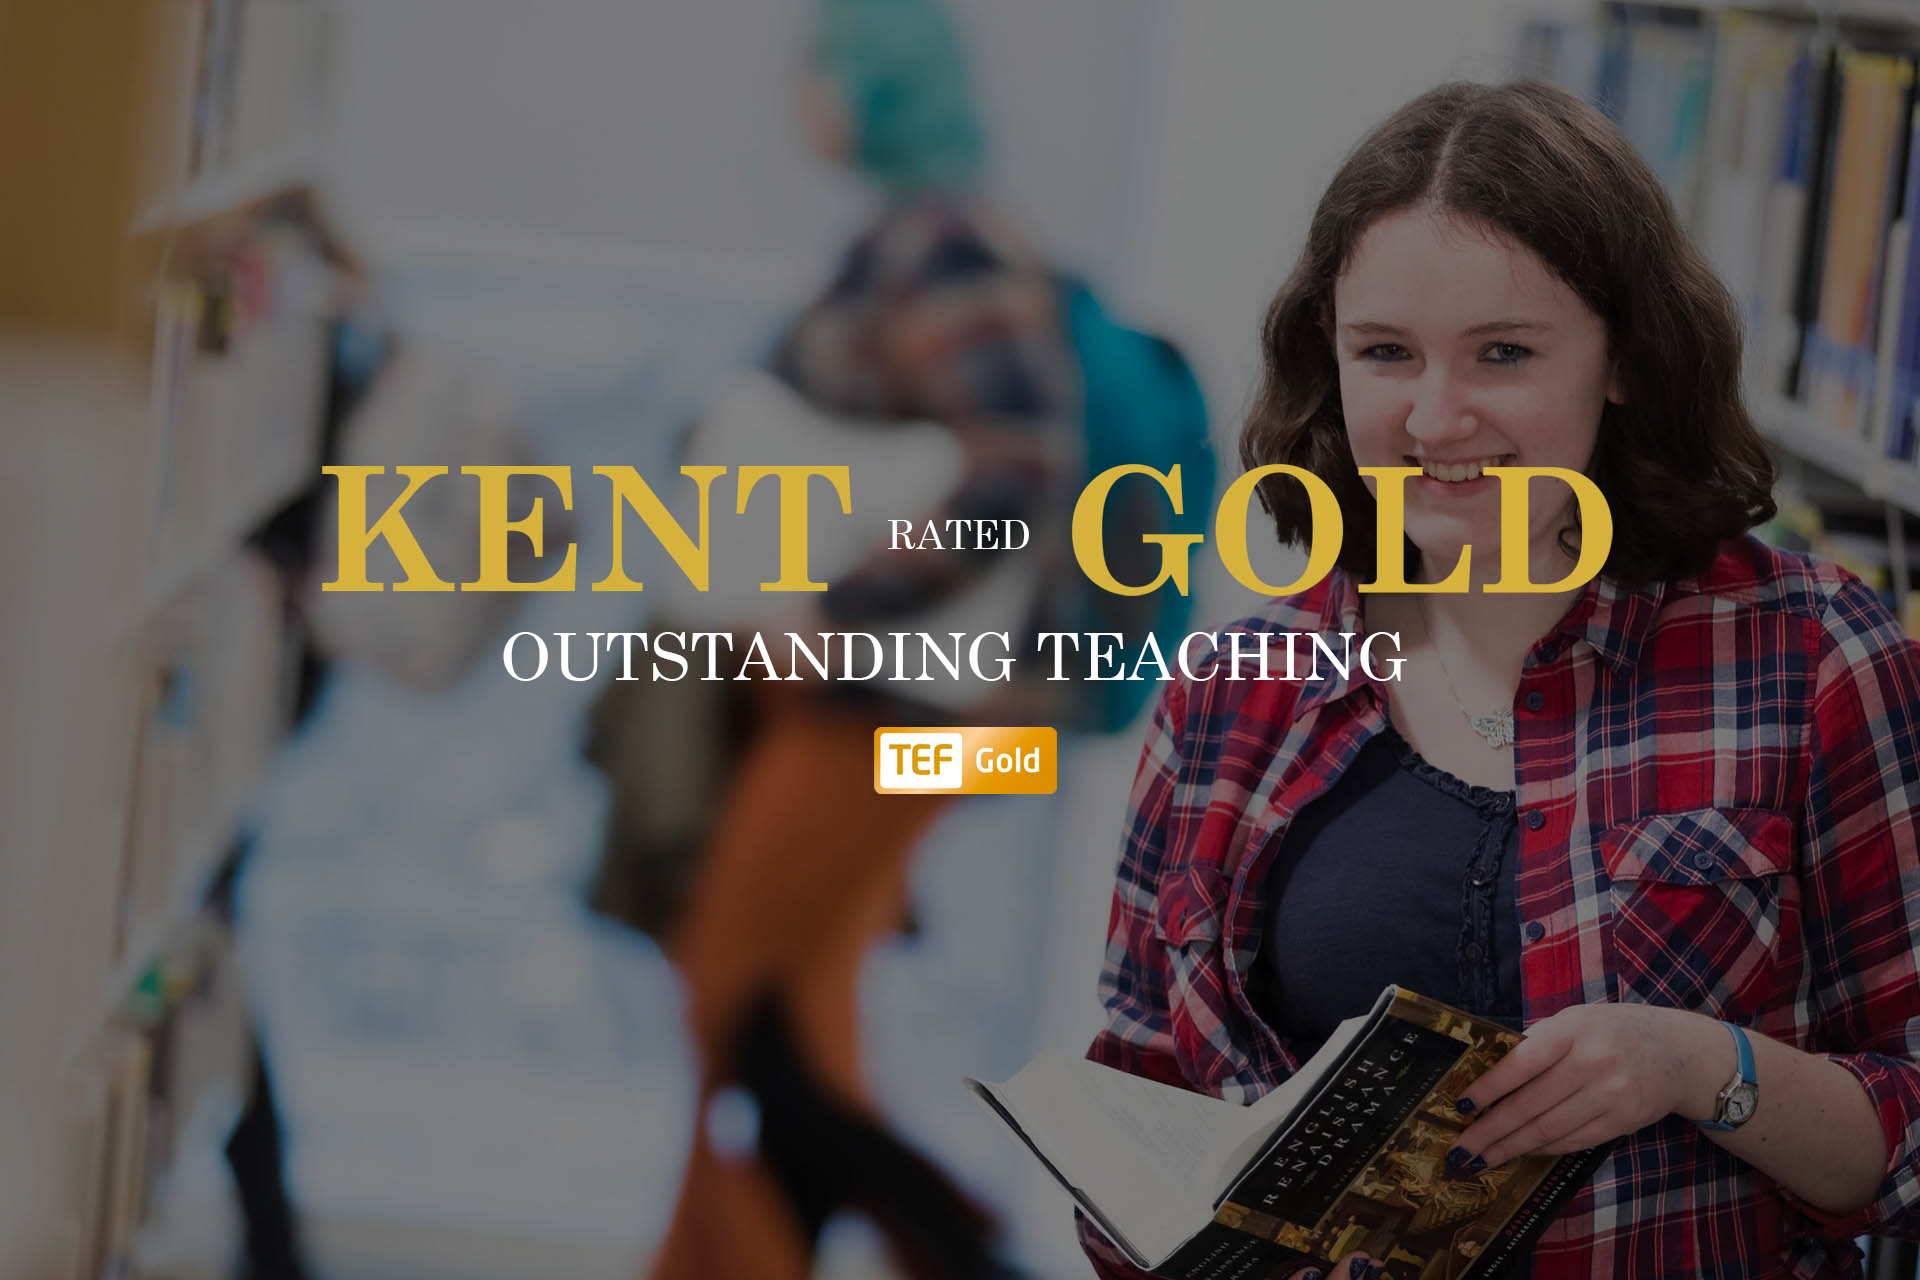 Kent rated TEF Gold for outstanding teaching